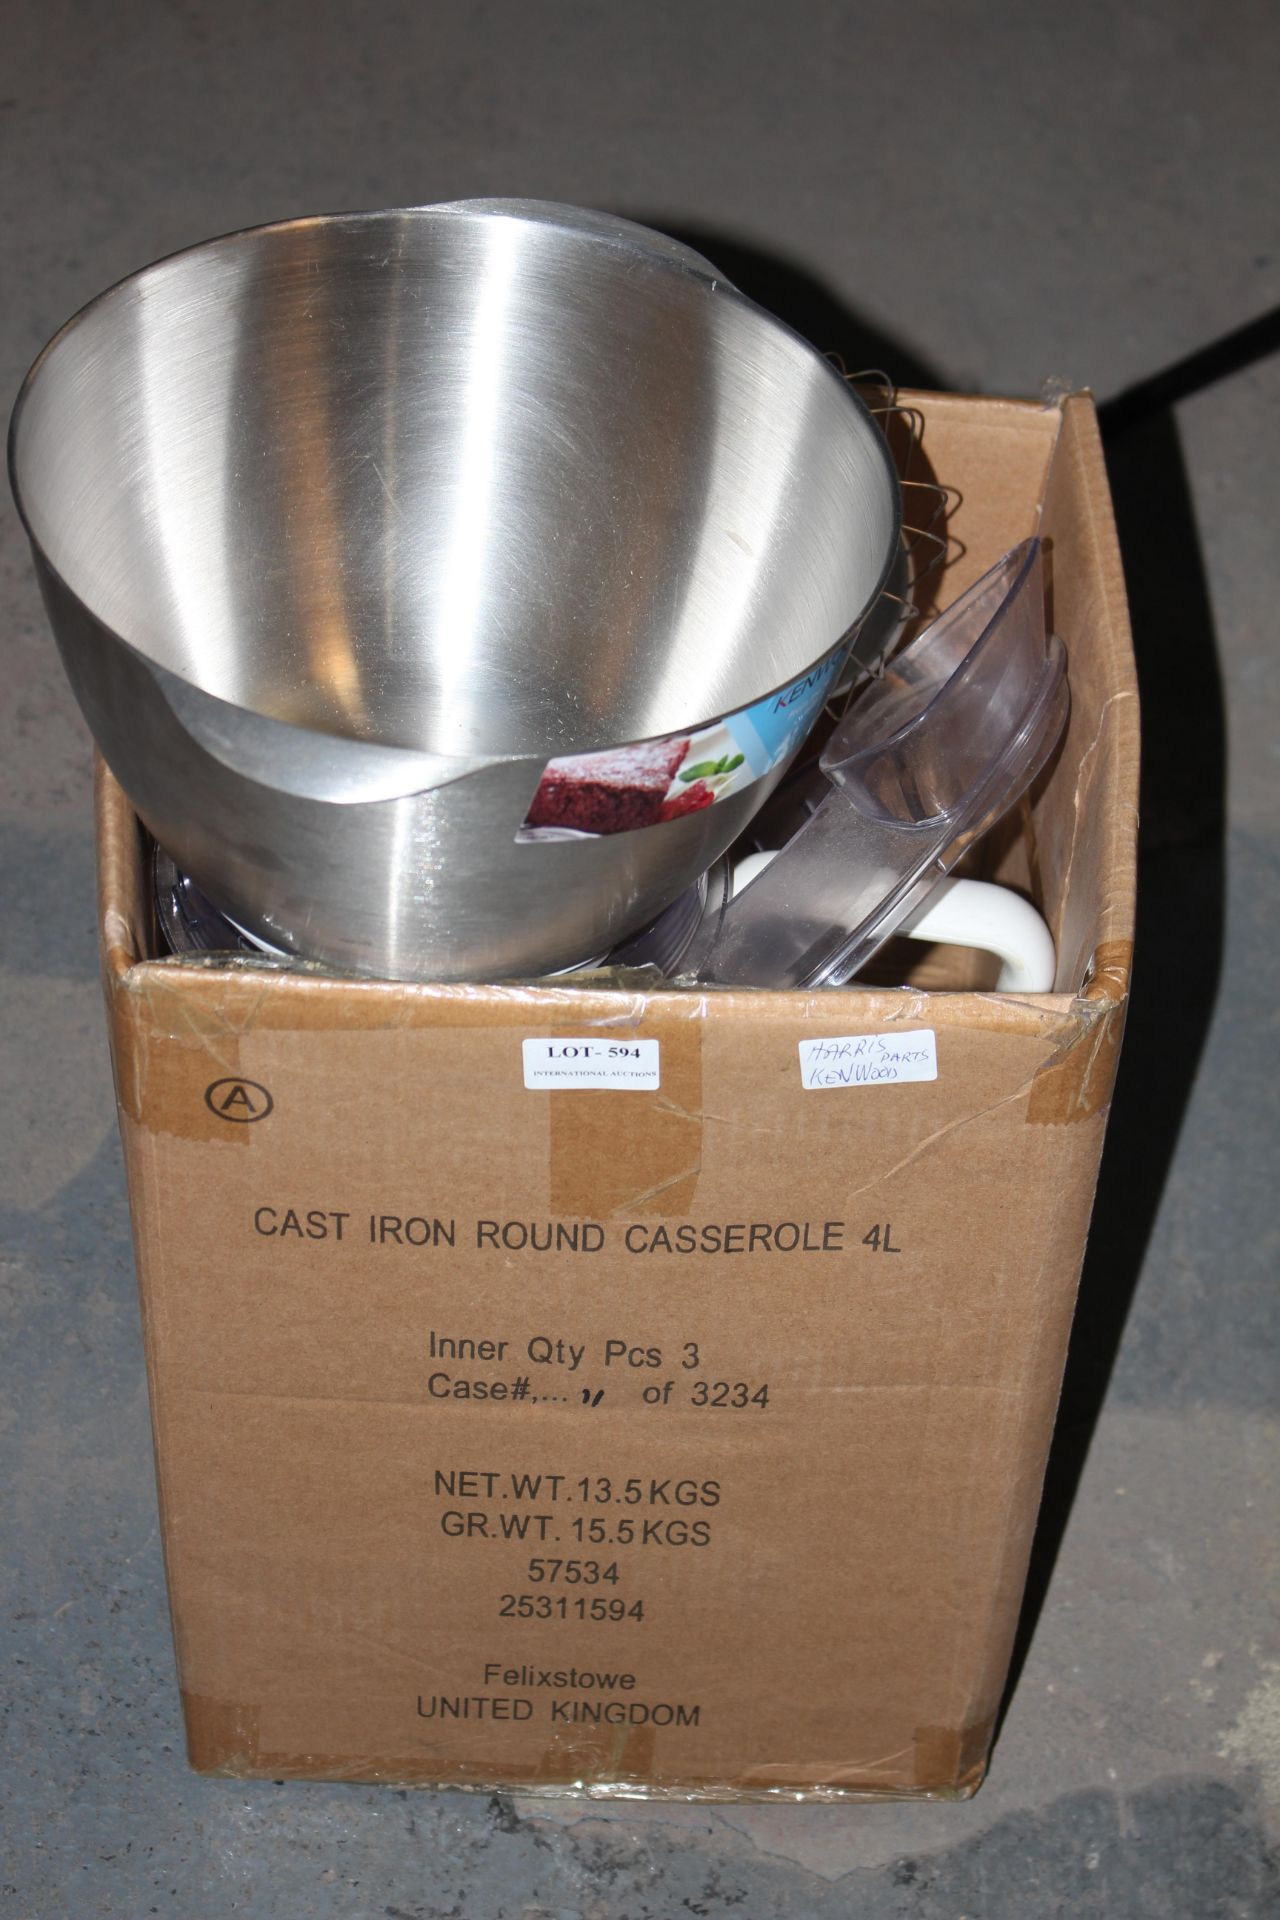 KENWOOD FOOD PROCESSOR WITH ATTACHMENTSCondition ReportAppraisal Available on Request- All Items are